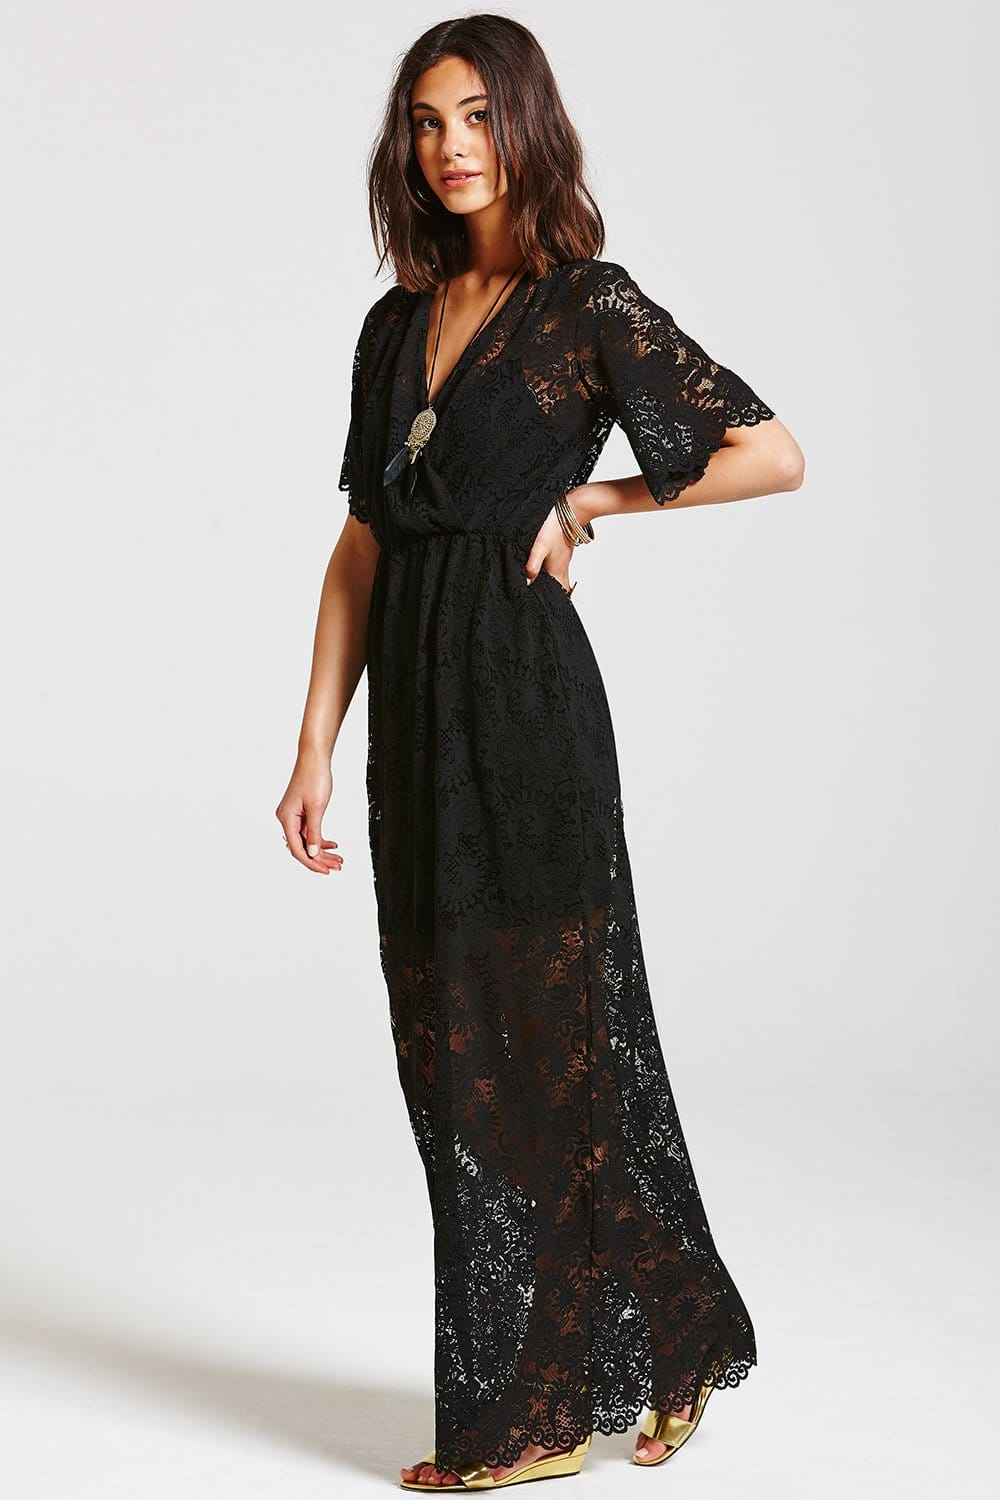 3b1b4a143a35 Outlet Girls On Film Black Layered Lace Maxi Dress - Outlet Girls ...  Outlet Girls On Film Black Layered Lace Maxi Dress Outlet Girls